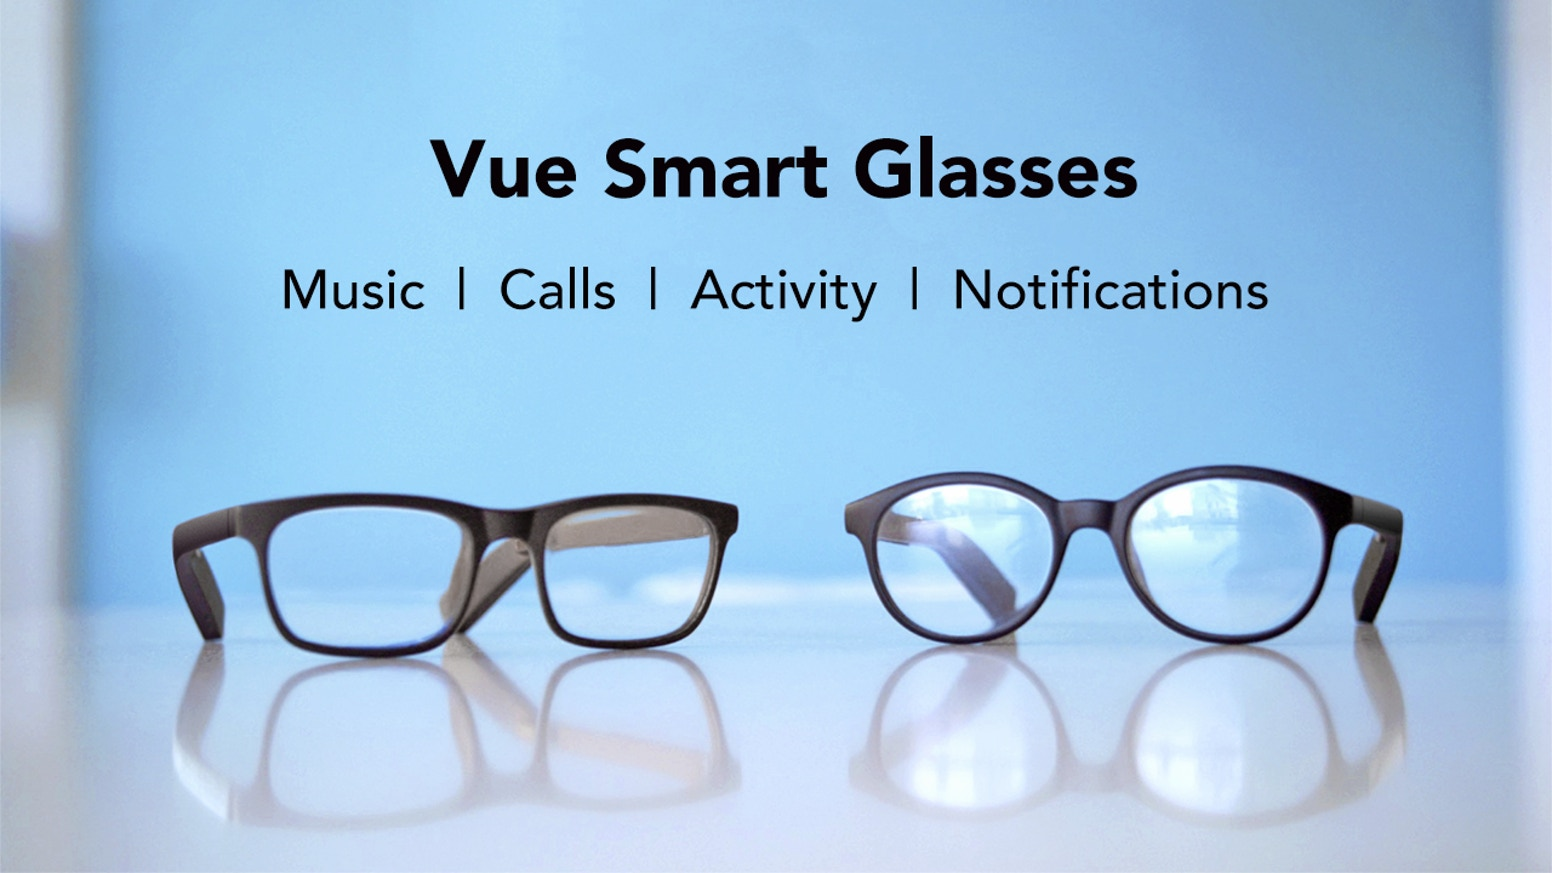 aa775a4750ae Vue is the world s first pair of smart glasses that are designed for  everyday use.